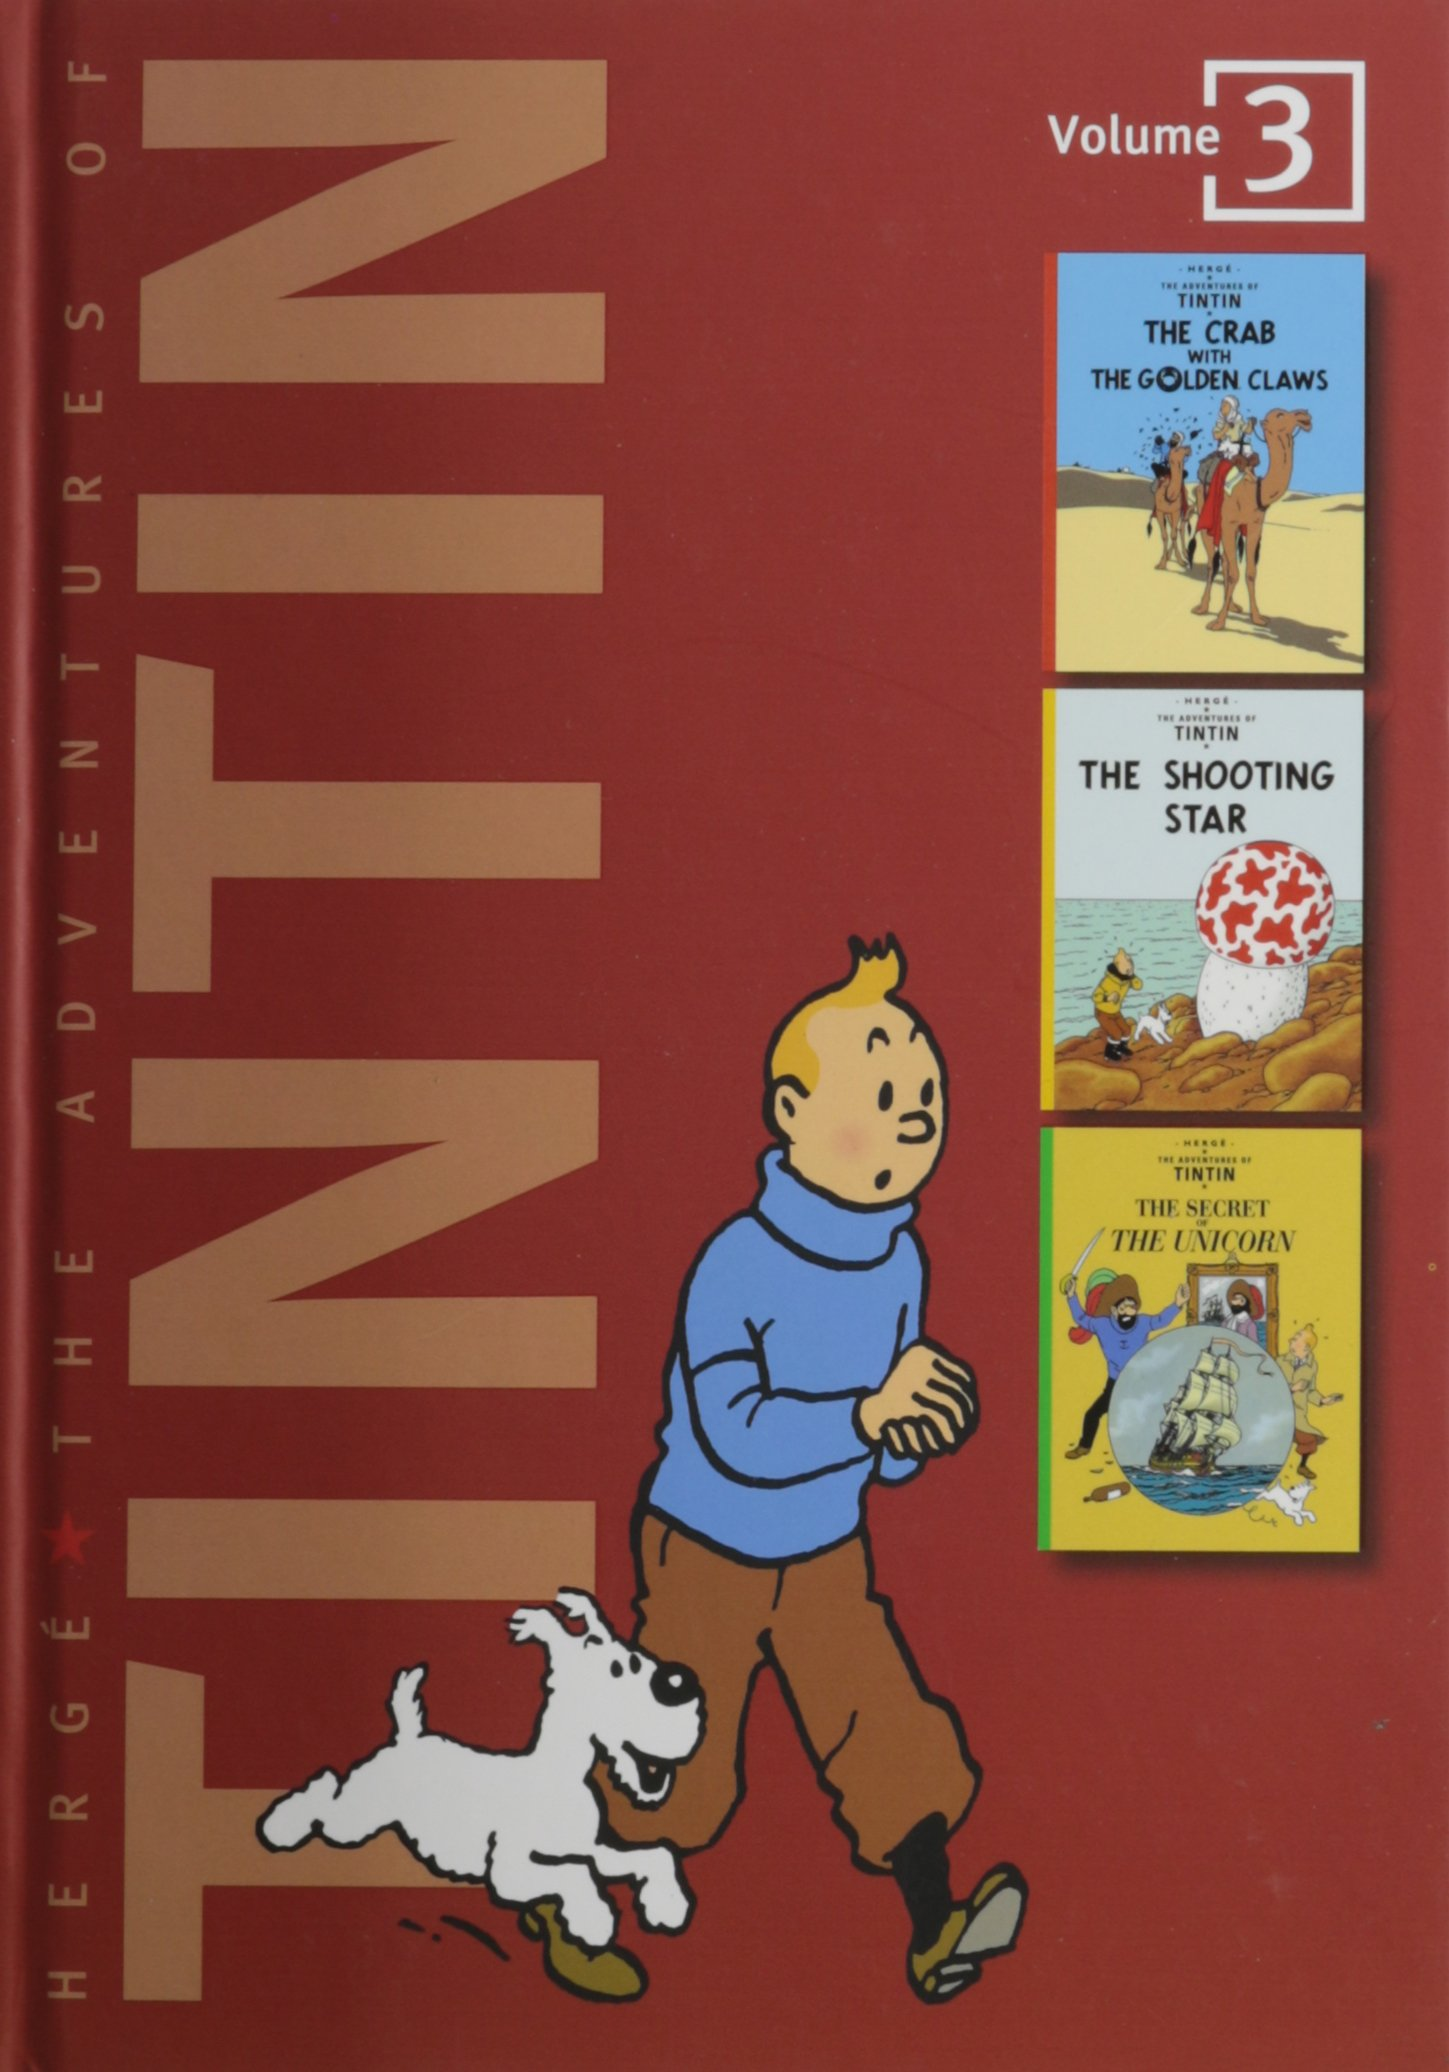 Image result for the adventures of tintin volume 3 Amazon